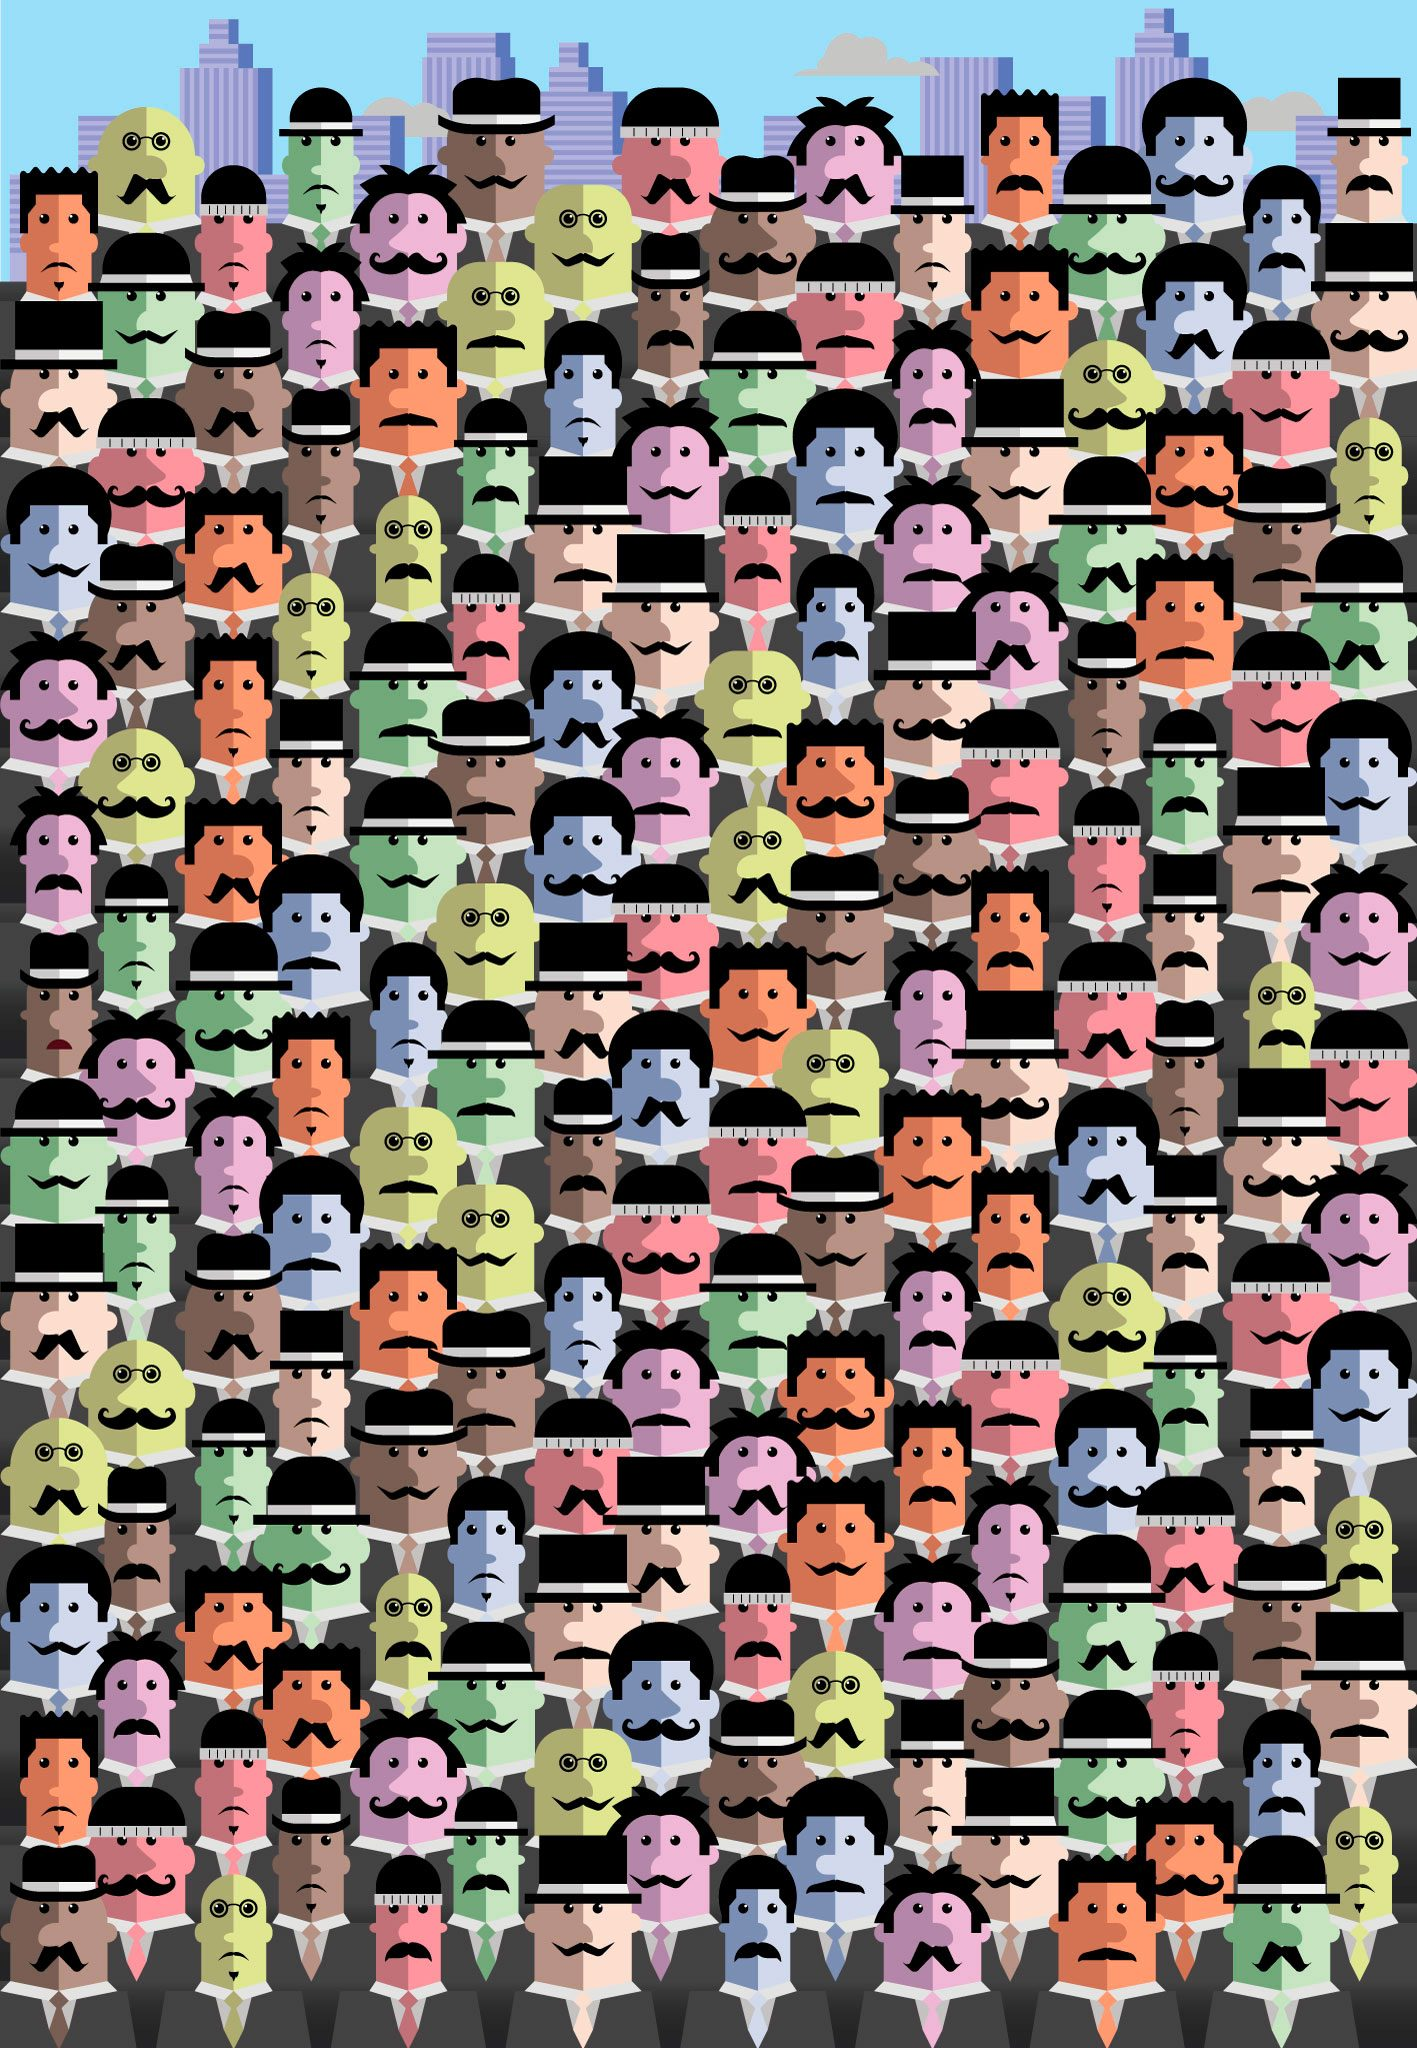 illustration; find the man without a mustache